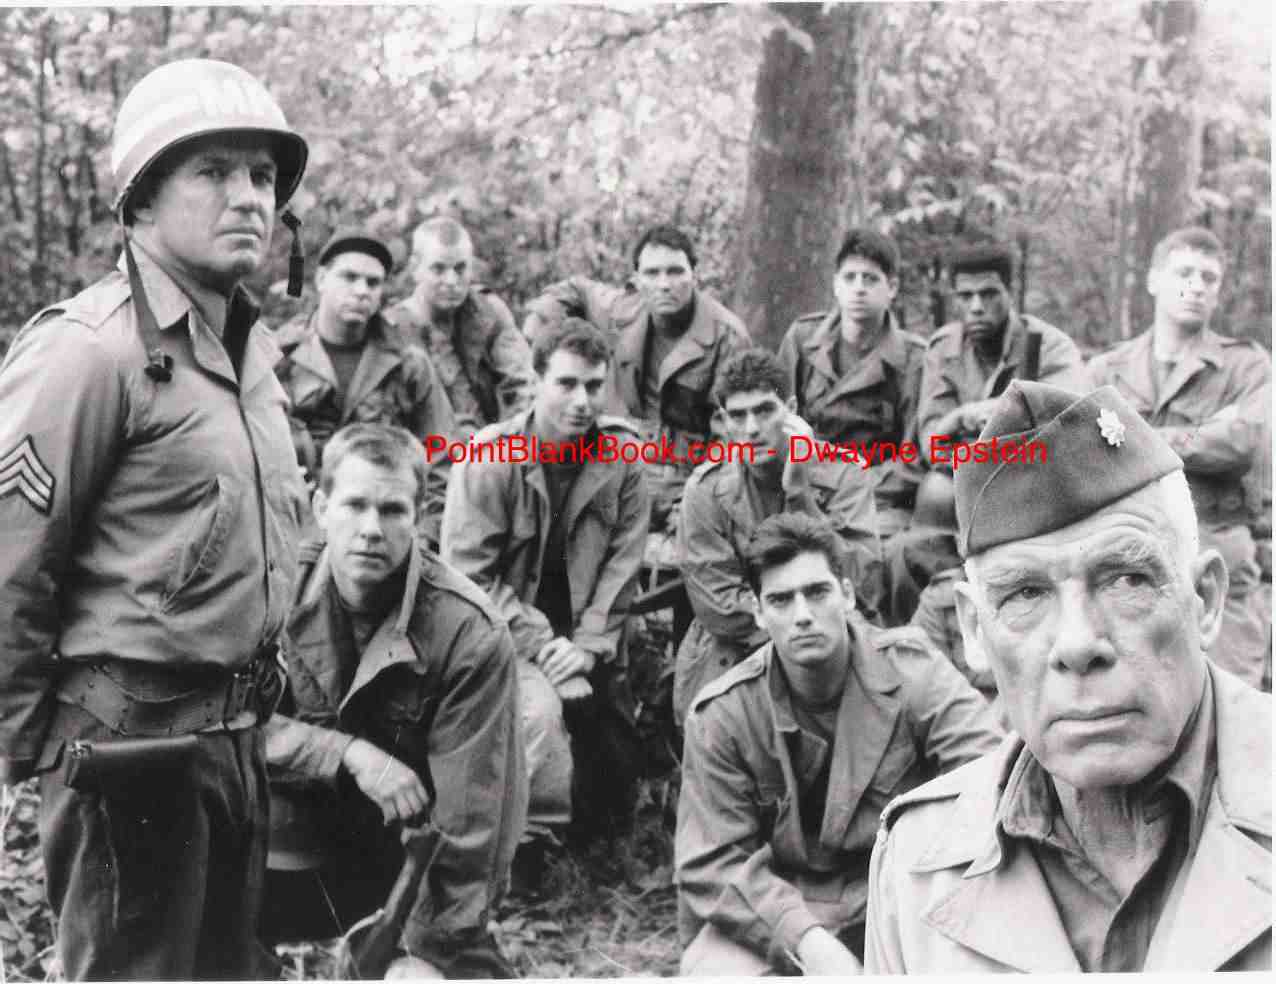 (left) RIchard Jaeckel reuturns as Sgt. Bowen shown with, among others, Larry Wilcox (next to Jaeckel) of CHiPS fame and Wiseguy's Ken Wahl, pcitured next to Marvin among the cast.